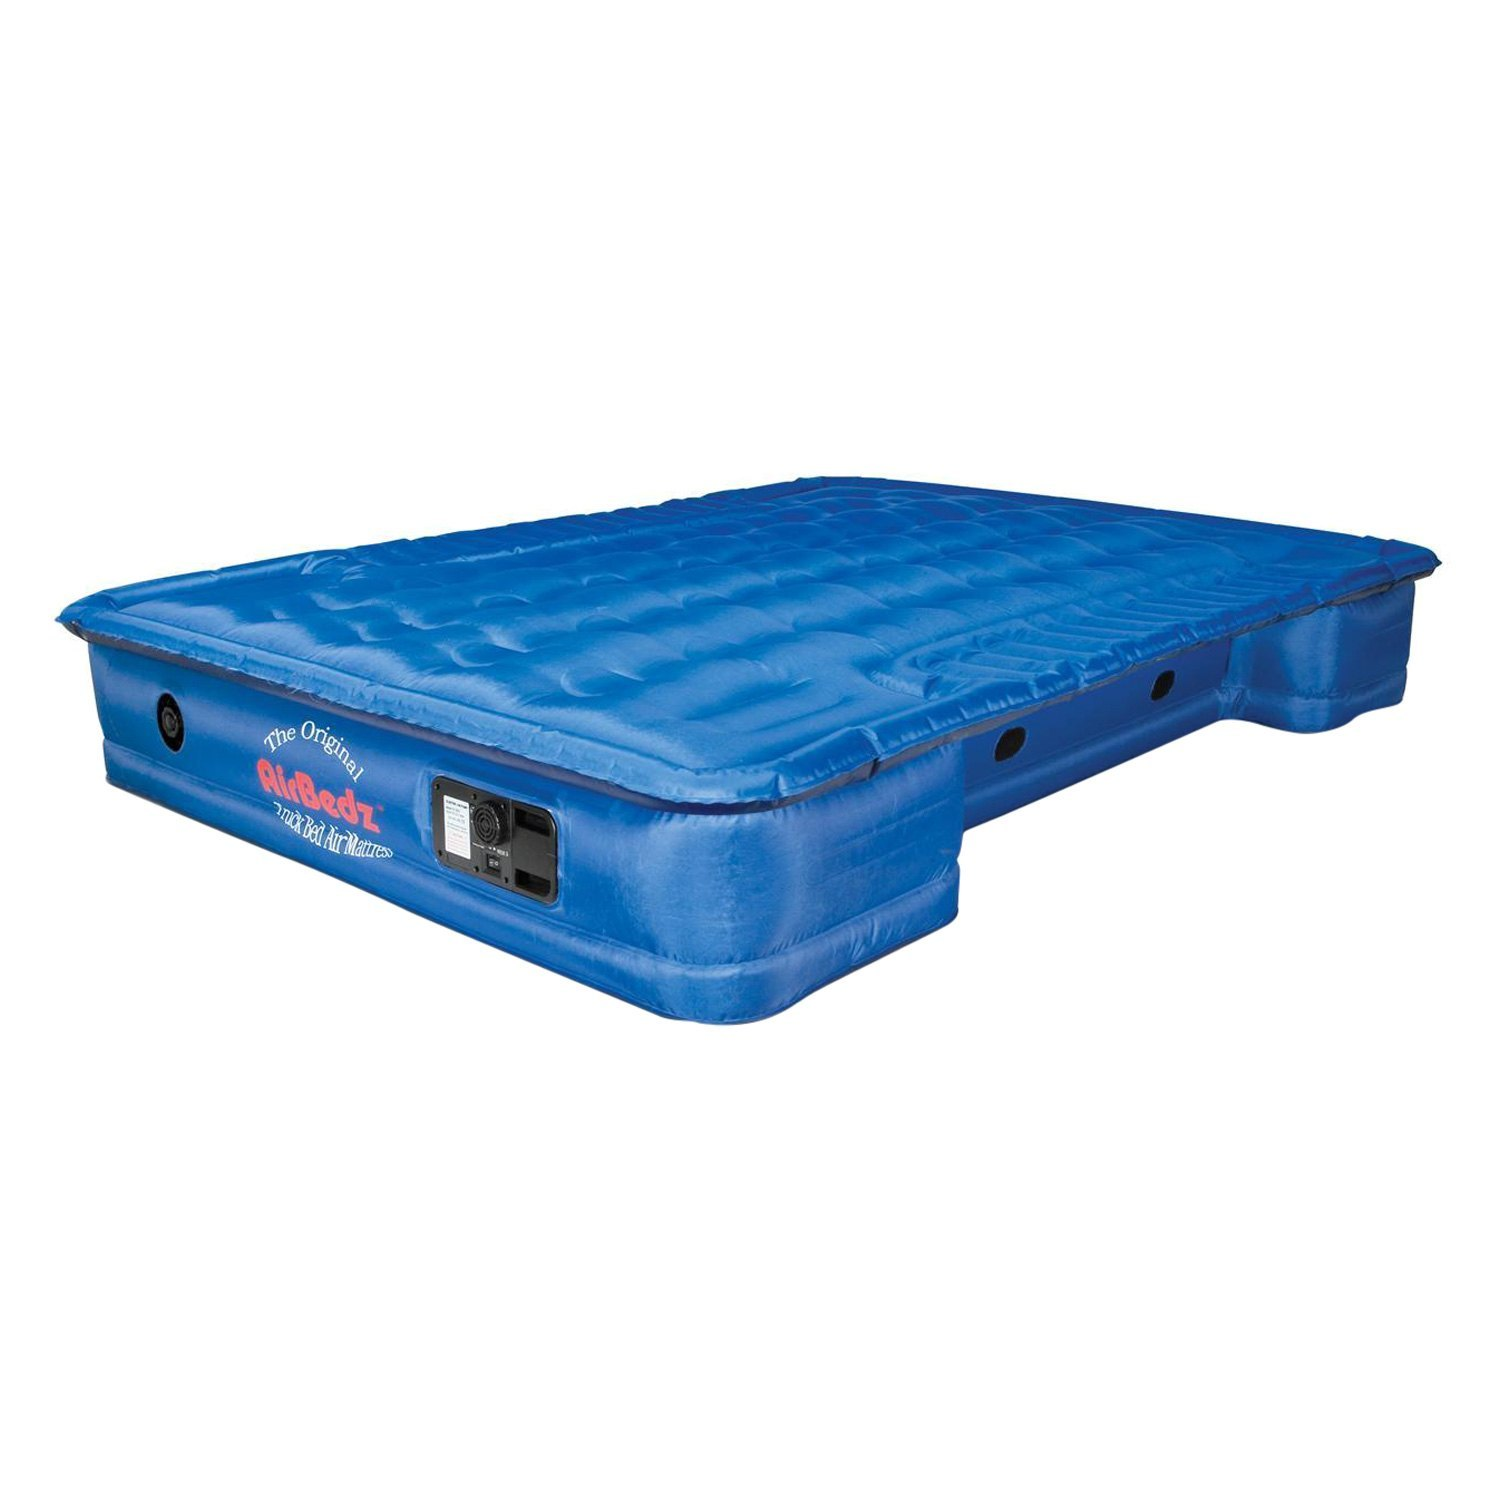 Air bed with frame - Airbedz Original Truck Bed Air Mattress